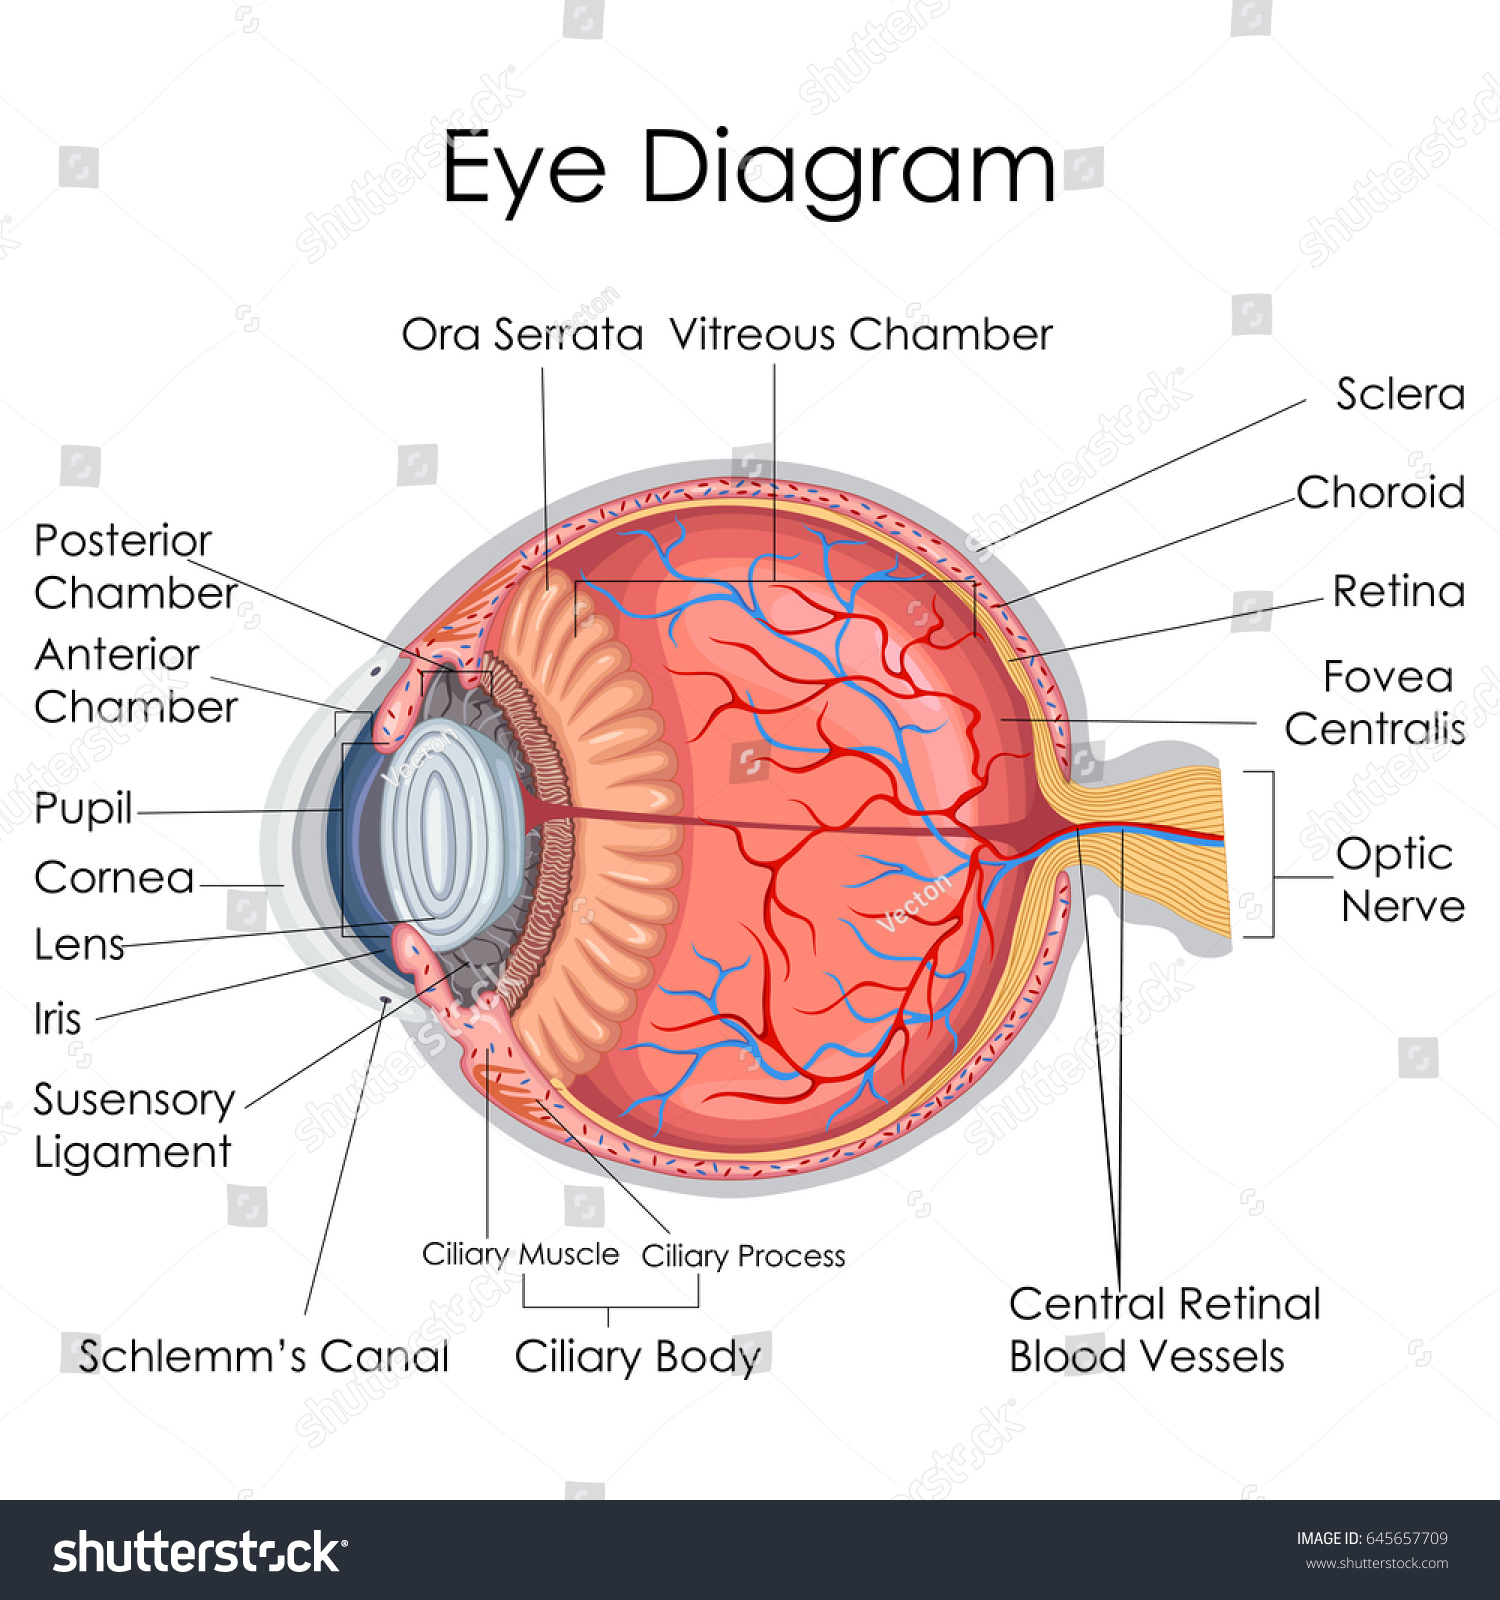 Medical education chart biology human eye stock vector 645657709 medical education chart of biology for human eye internal diagram vector illustration pooptronica Image collections